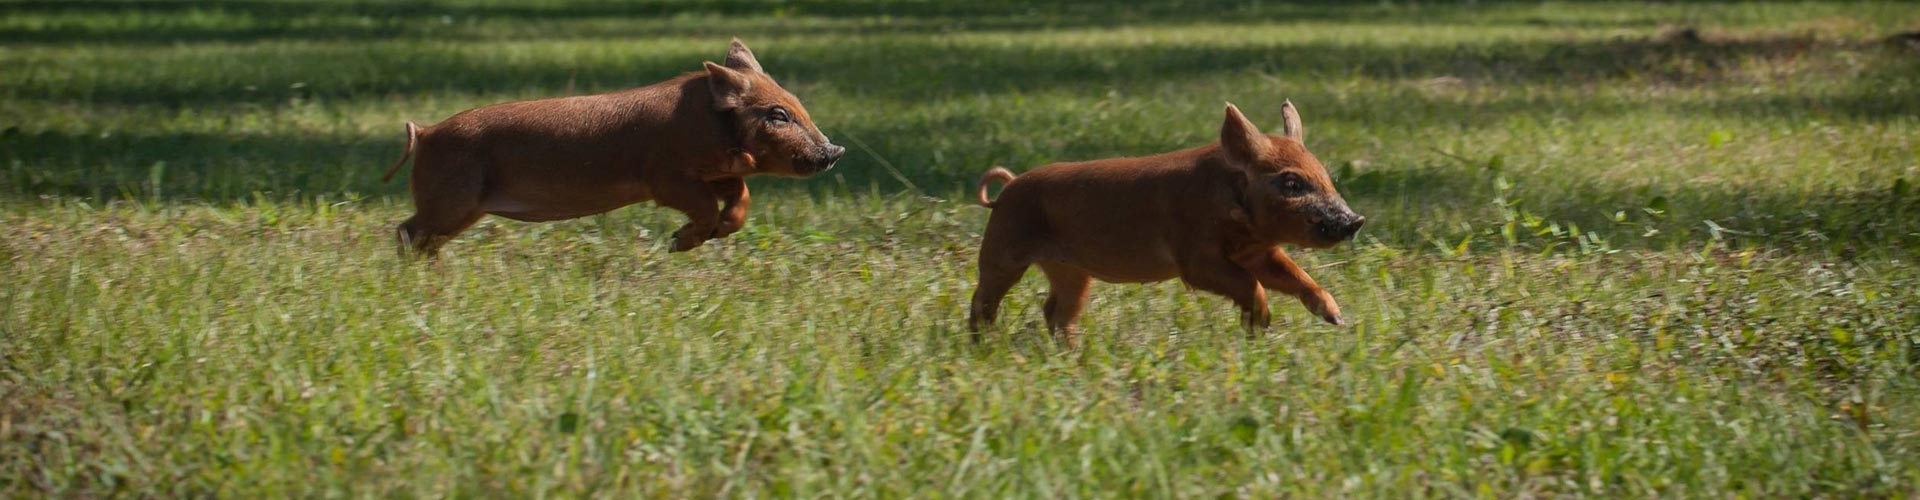 Red wattle piglets running